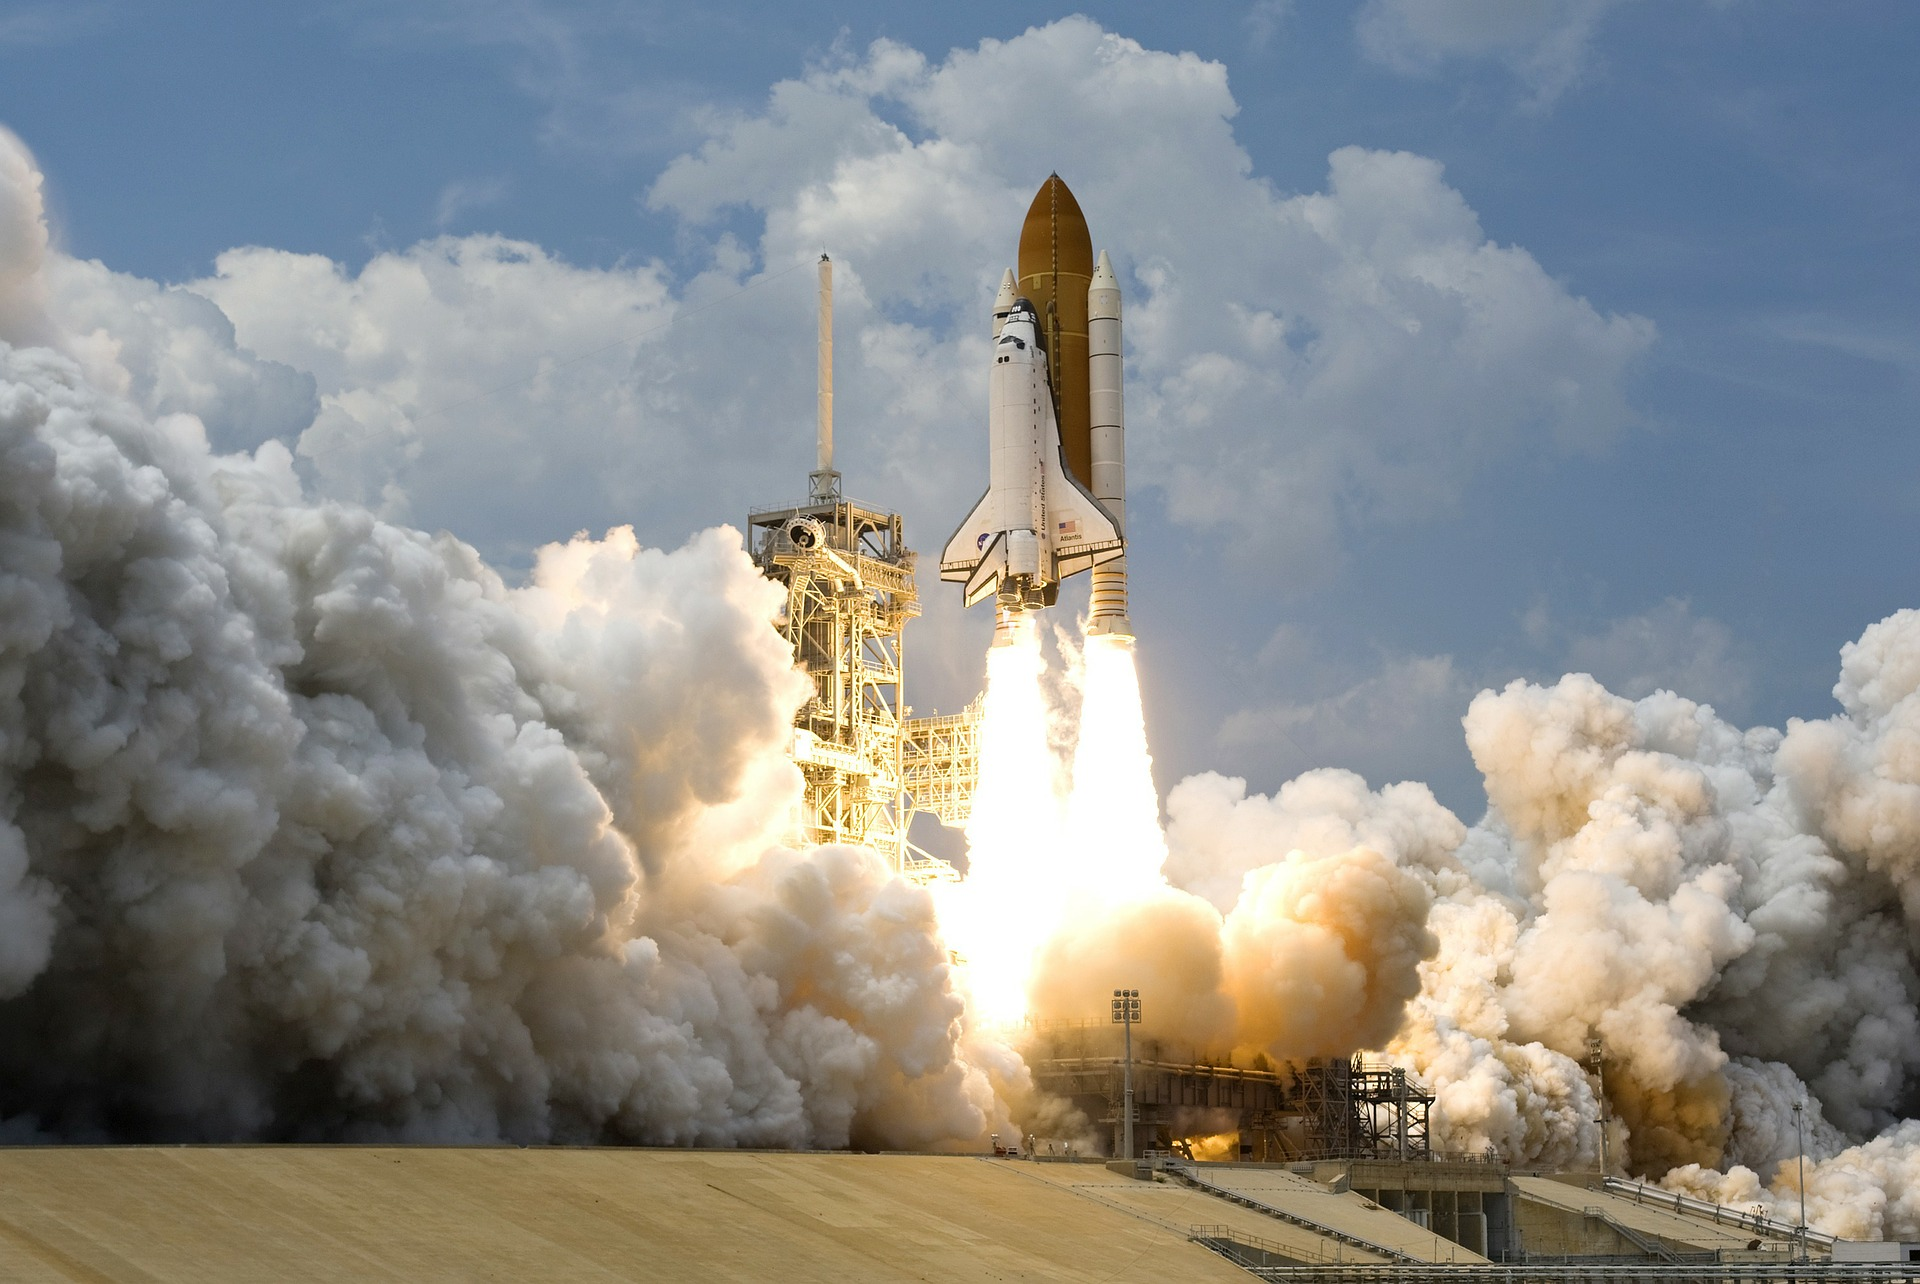 5 things to consider before launching another internal app 6